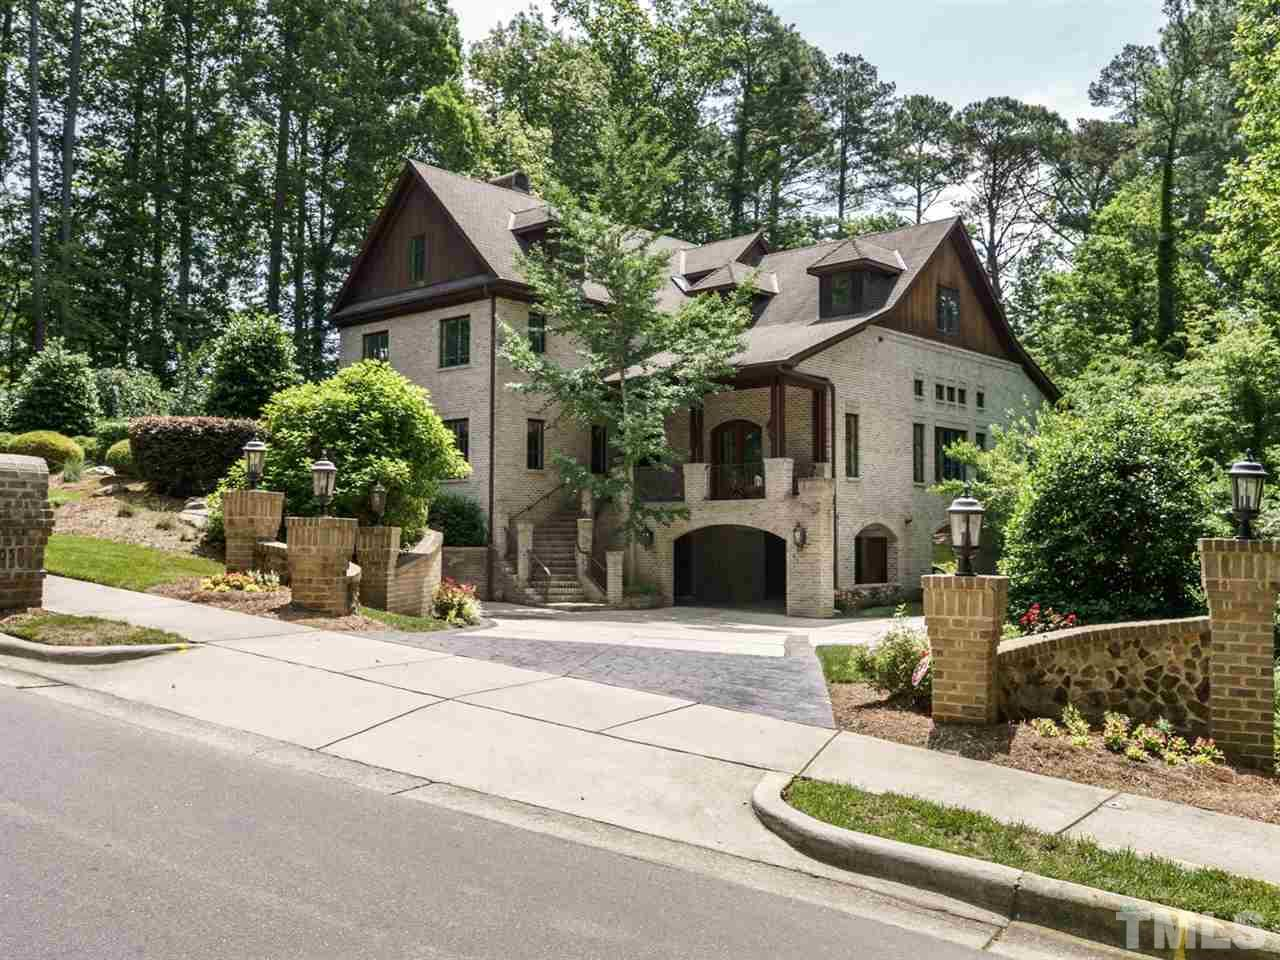 605 QUEENSFERRY ROAD, CARY, NC 27511